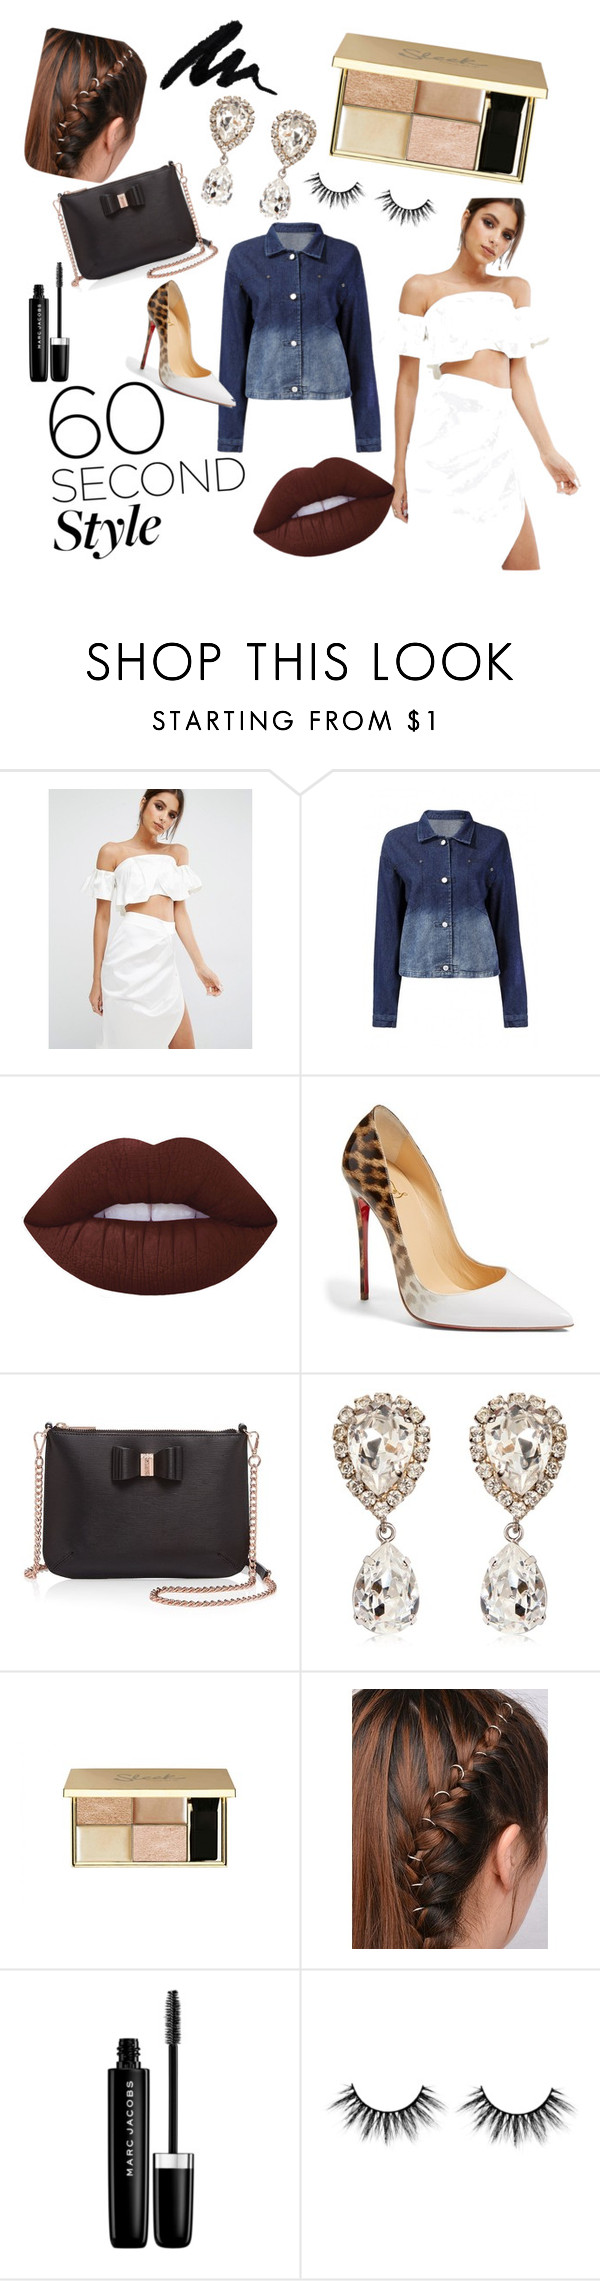 """yassss"" by aricrowder on Polyvore featuring Kendall + Kylie, Lime Crime, Christian Louboutin, Ted Baker, Dolce&Gabbana, Marc Jacobs, ombre and 60secondstyle"